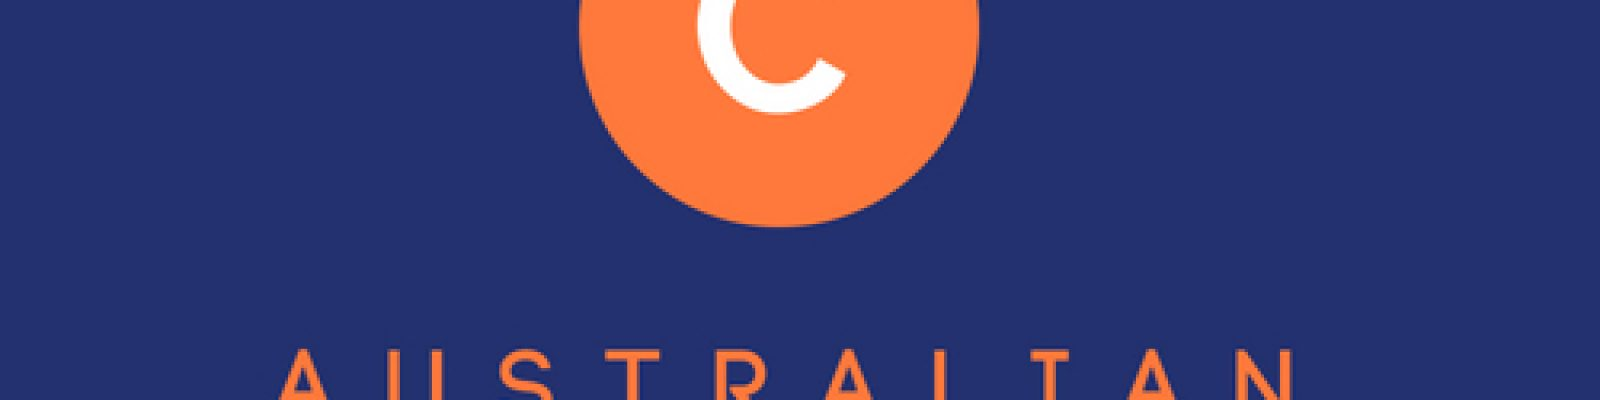 Orange circle on blue background with text Australian Copyright Council